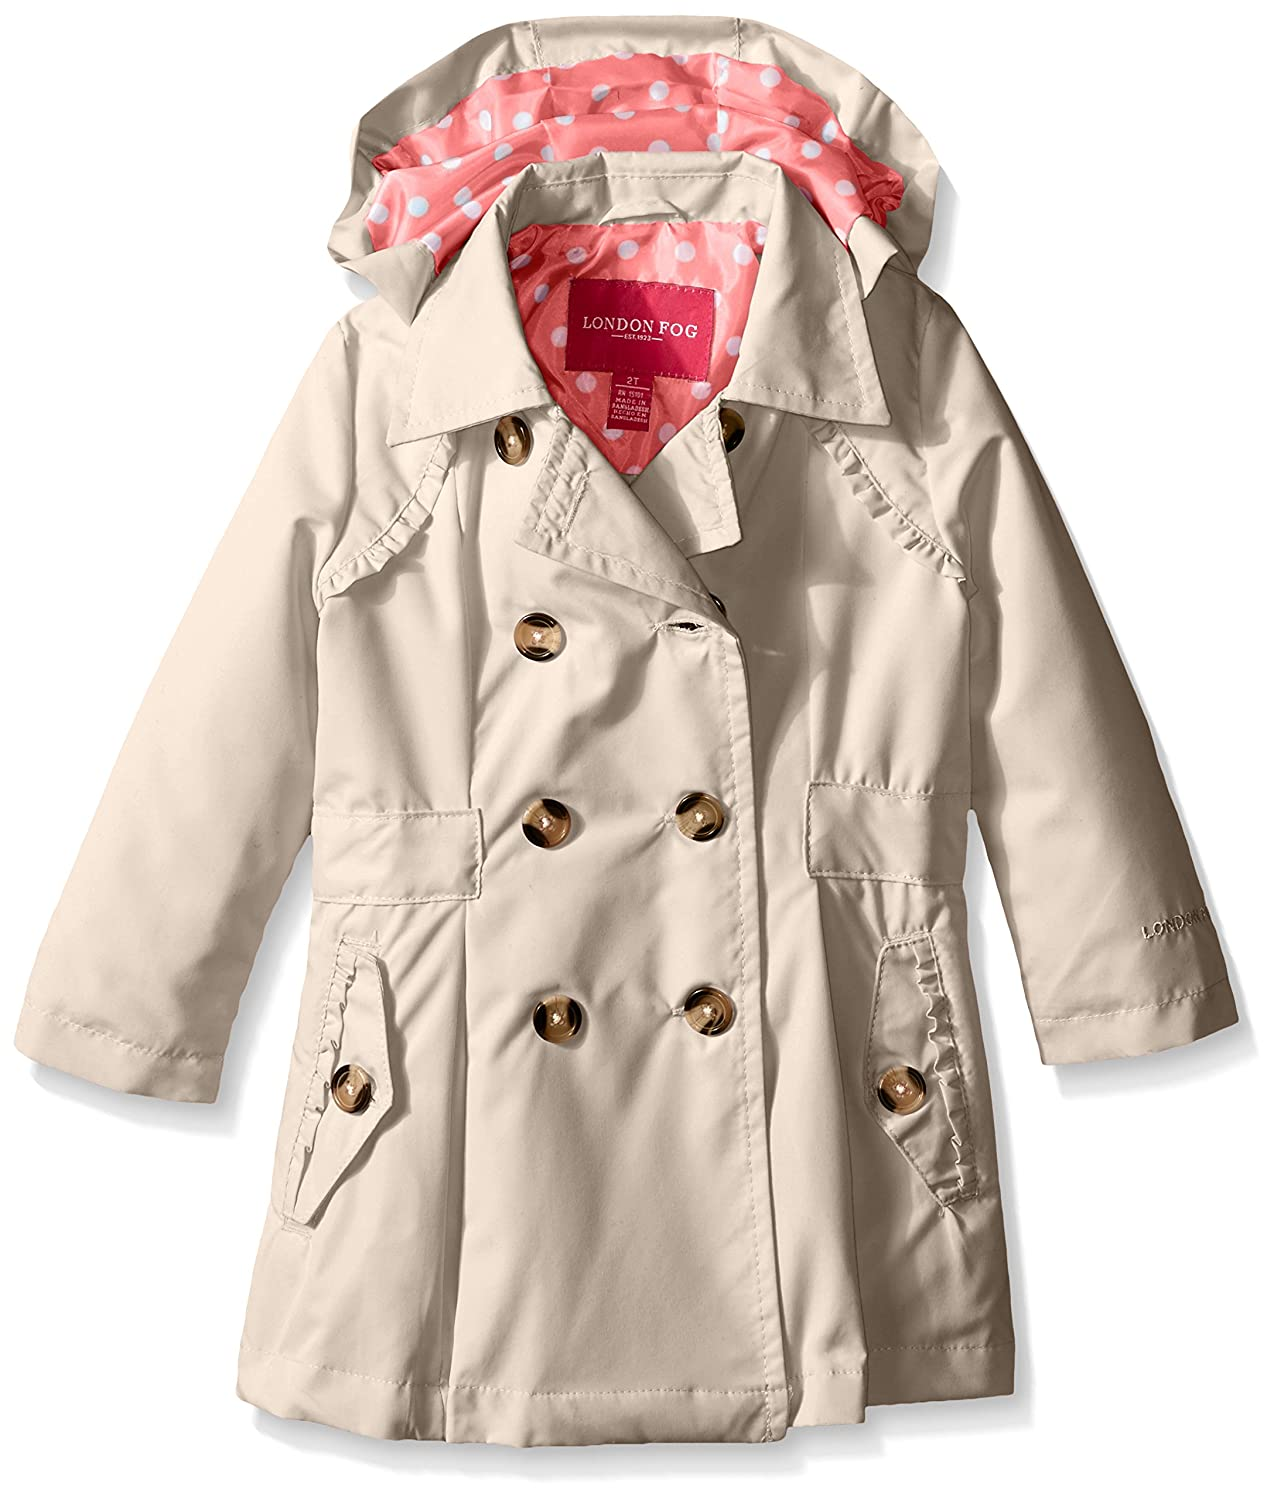 Amazon.com: London Fog Girls Lightweight Trench Coat: Clothing